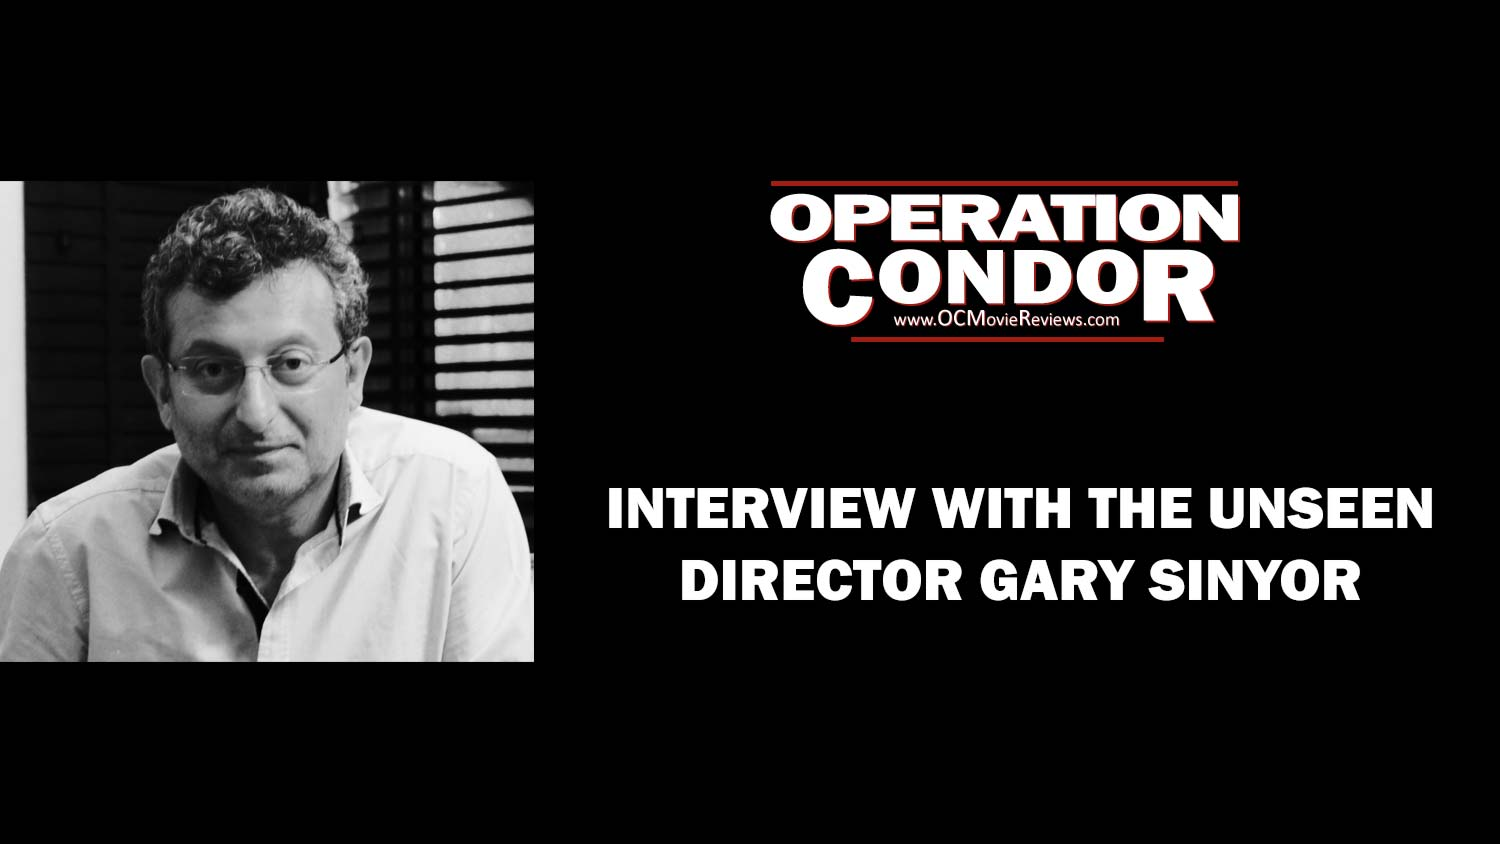 Interview With Director Gary Sinyor - OC Movie Reviews - Movie Reviews, Movie News, Documentary Reviews, Short Films, Short Film Reviews, Trailers, Movie Trailers, Interviews, film reviews, film news, hollywood, indie films, documentaries